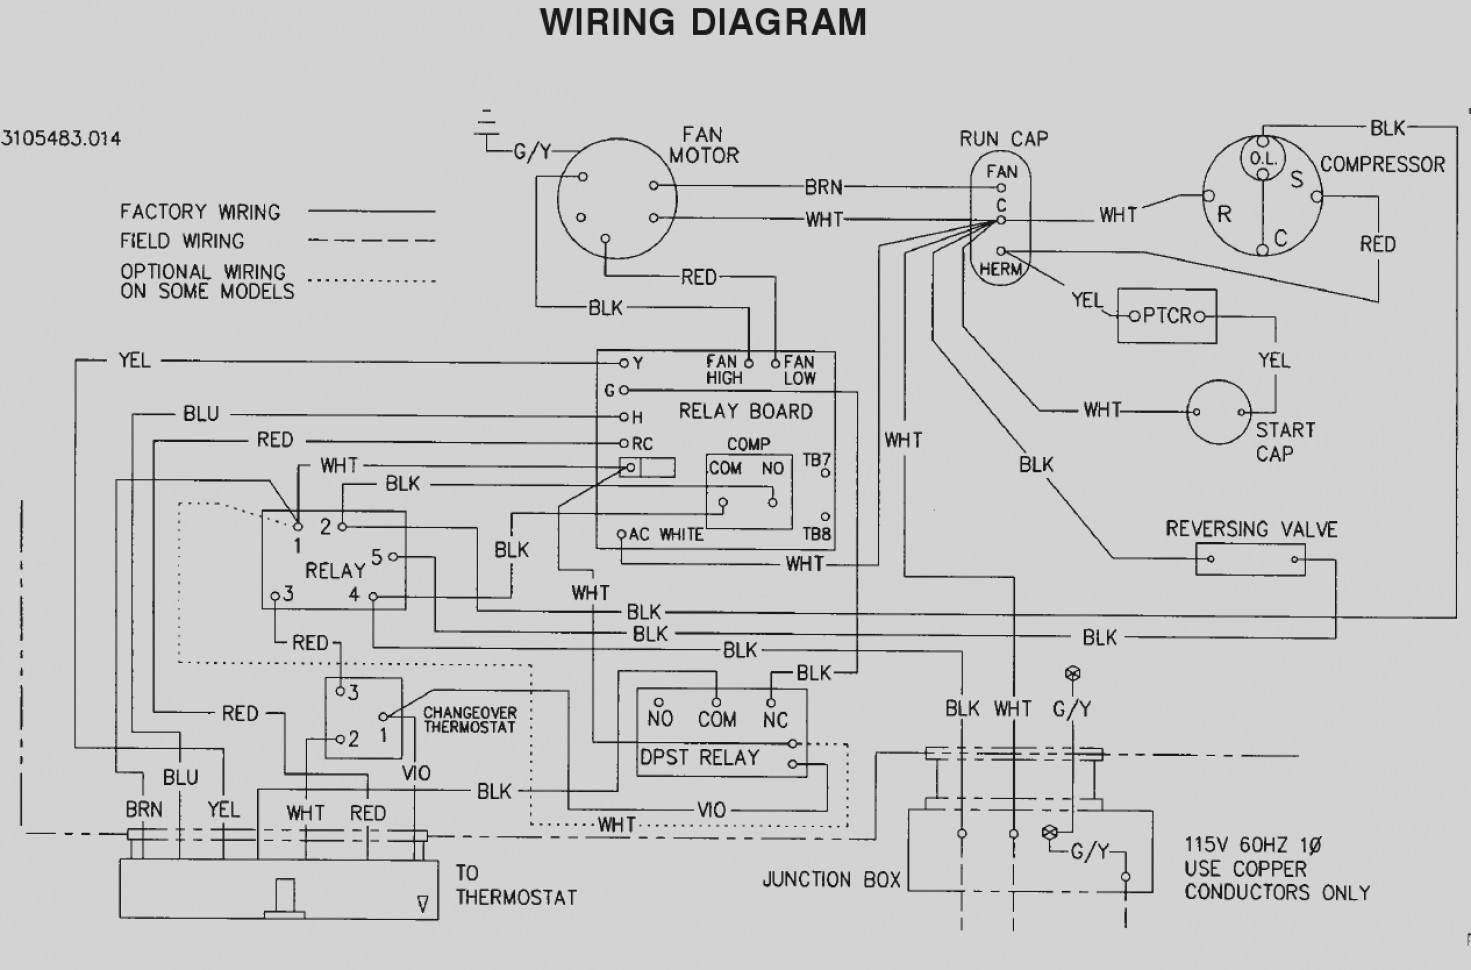 icp fan coil wiring diagram wiring diagram portal u2022 rh graphiko co Home Thermostat Wiring Diagram HVAC Thermostat Wiring Diagram